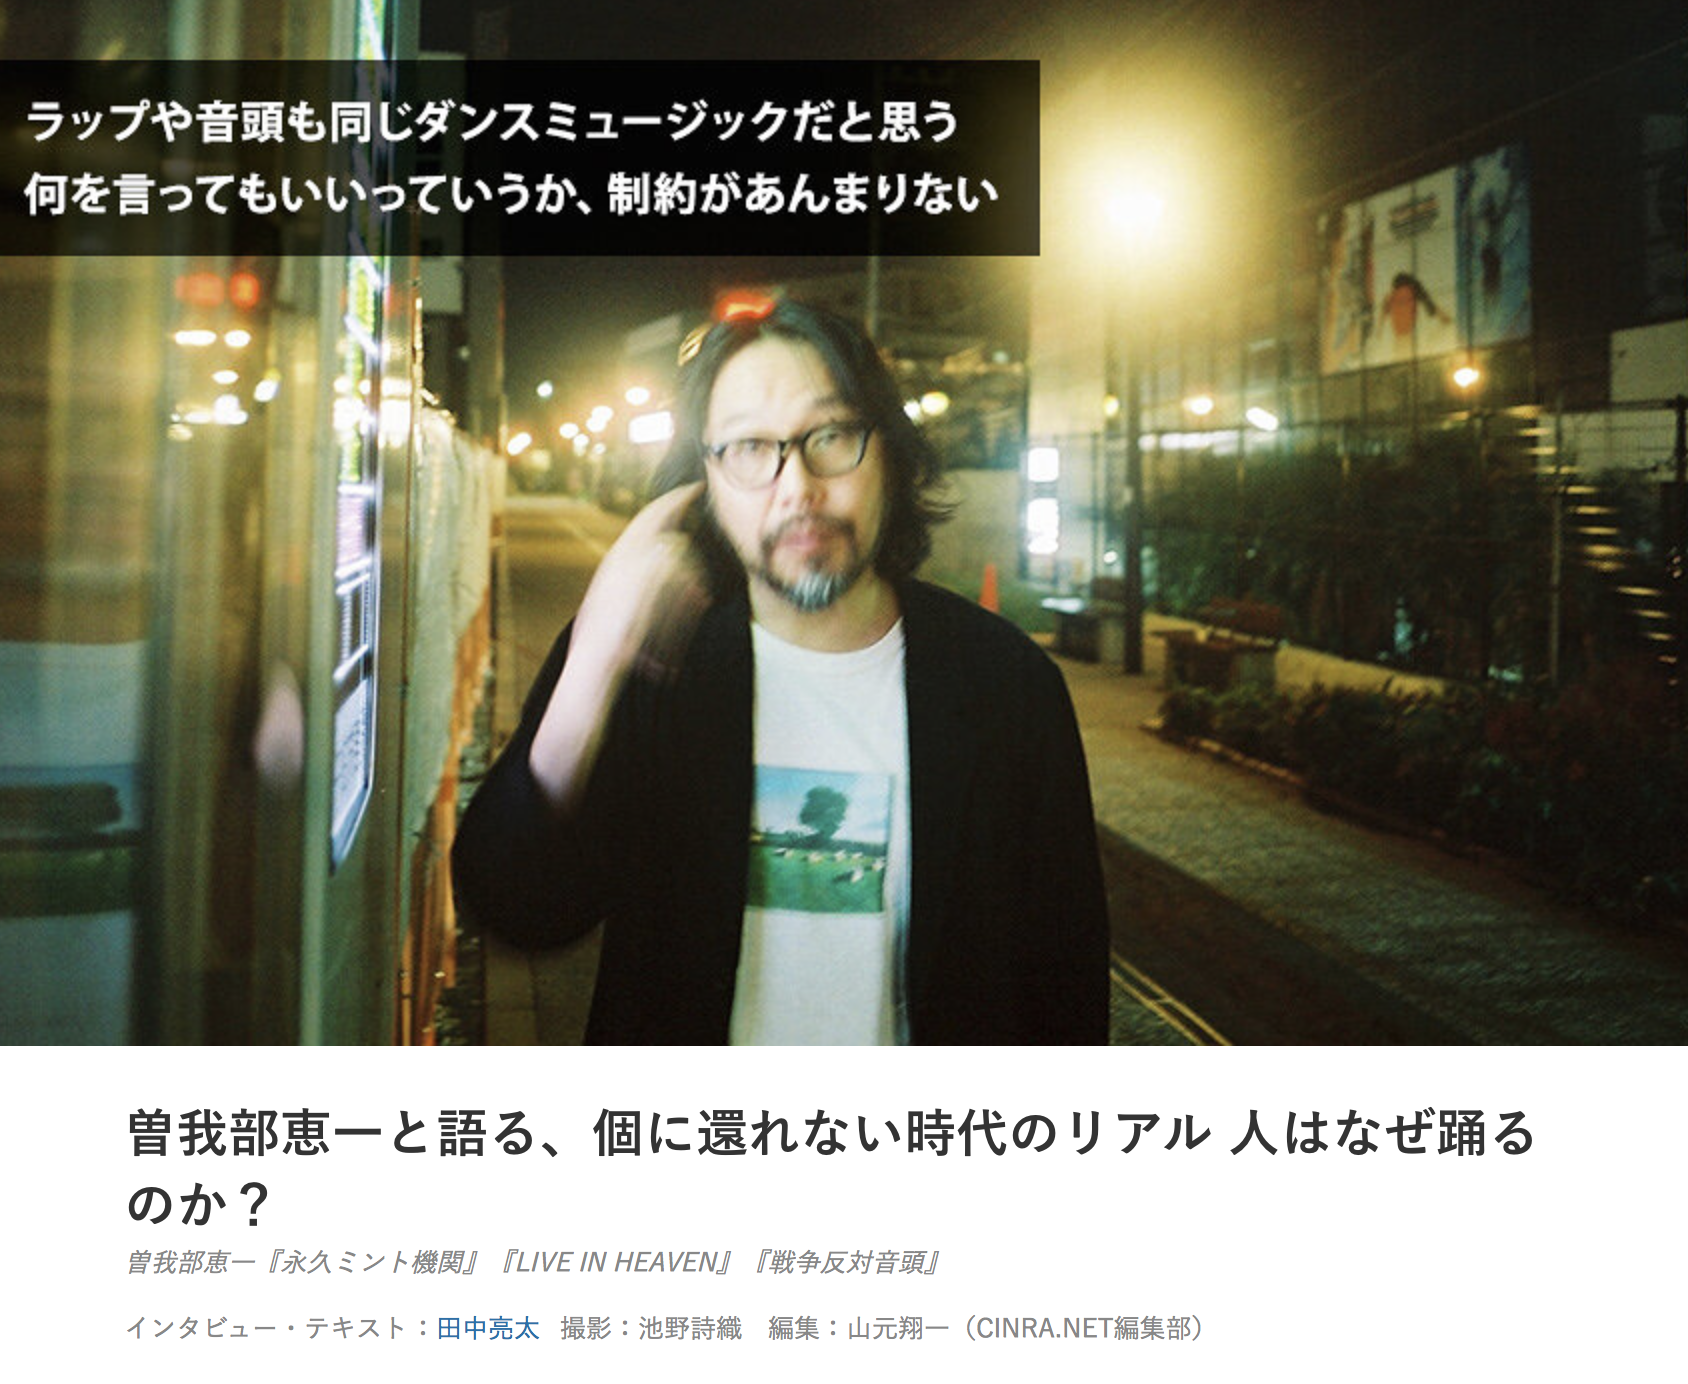 http://rose-records.jp/files/20201023194721.png